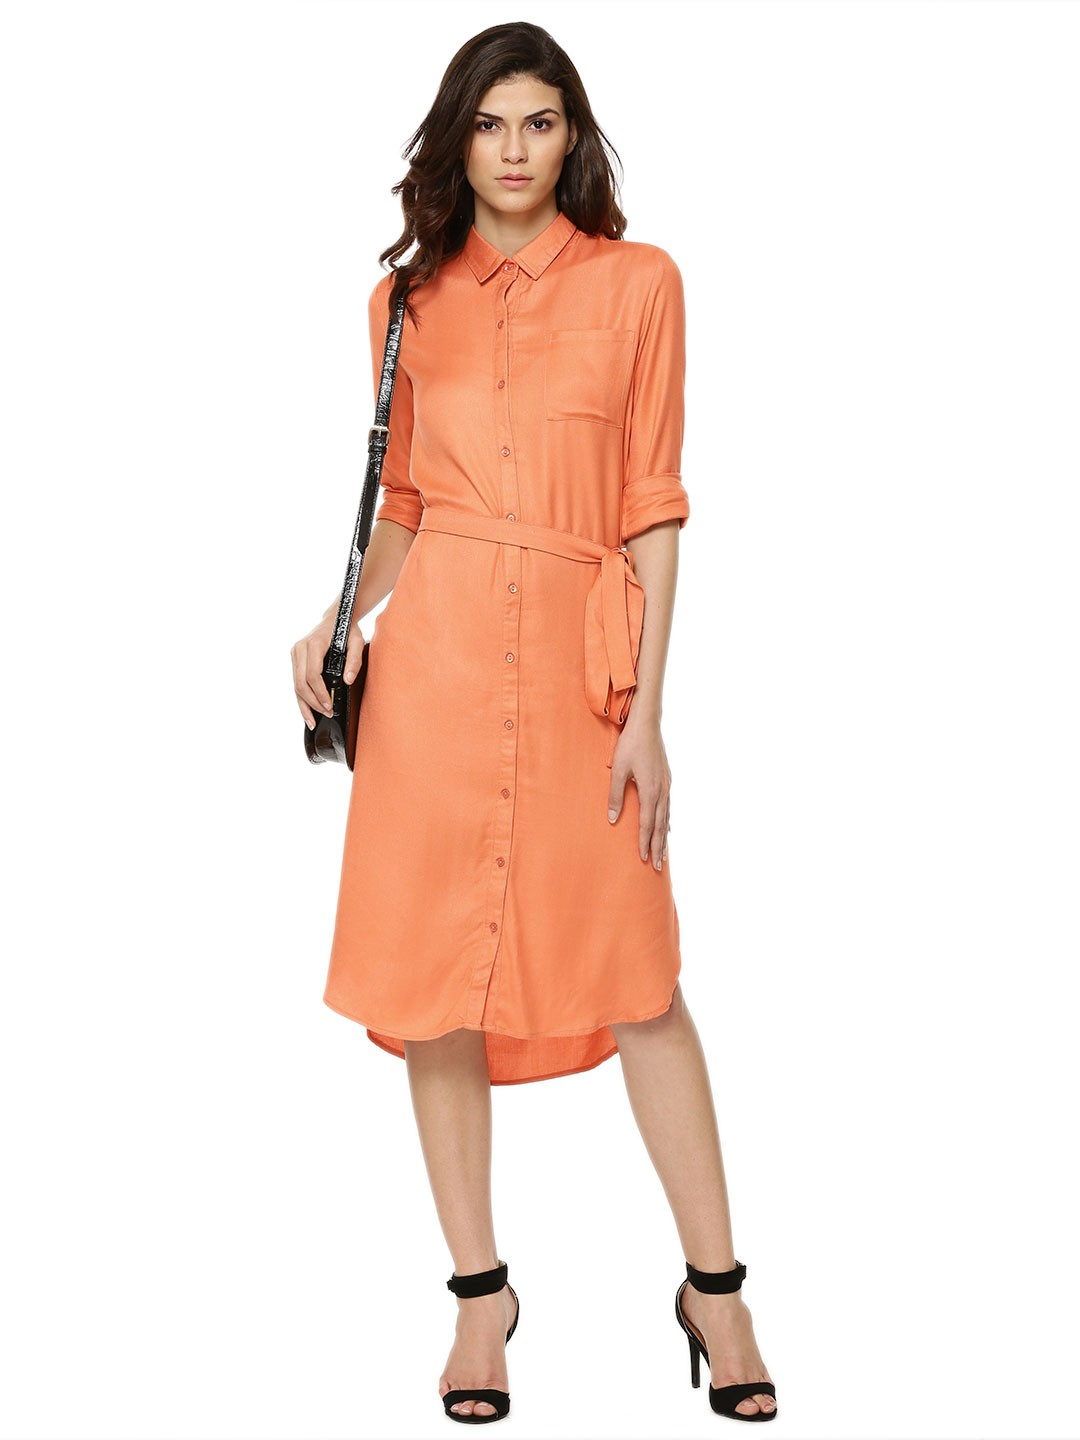 buy femella long shirt dress for women women 39 s pink